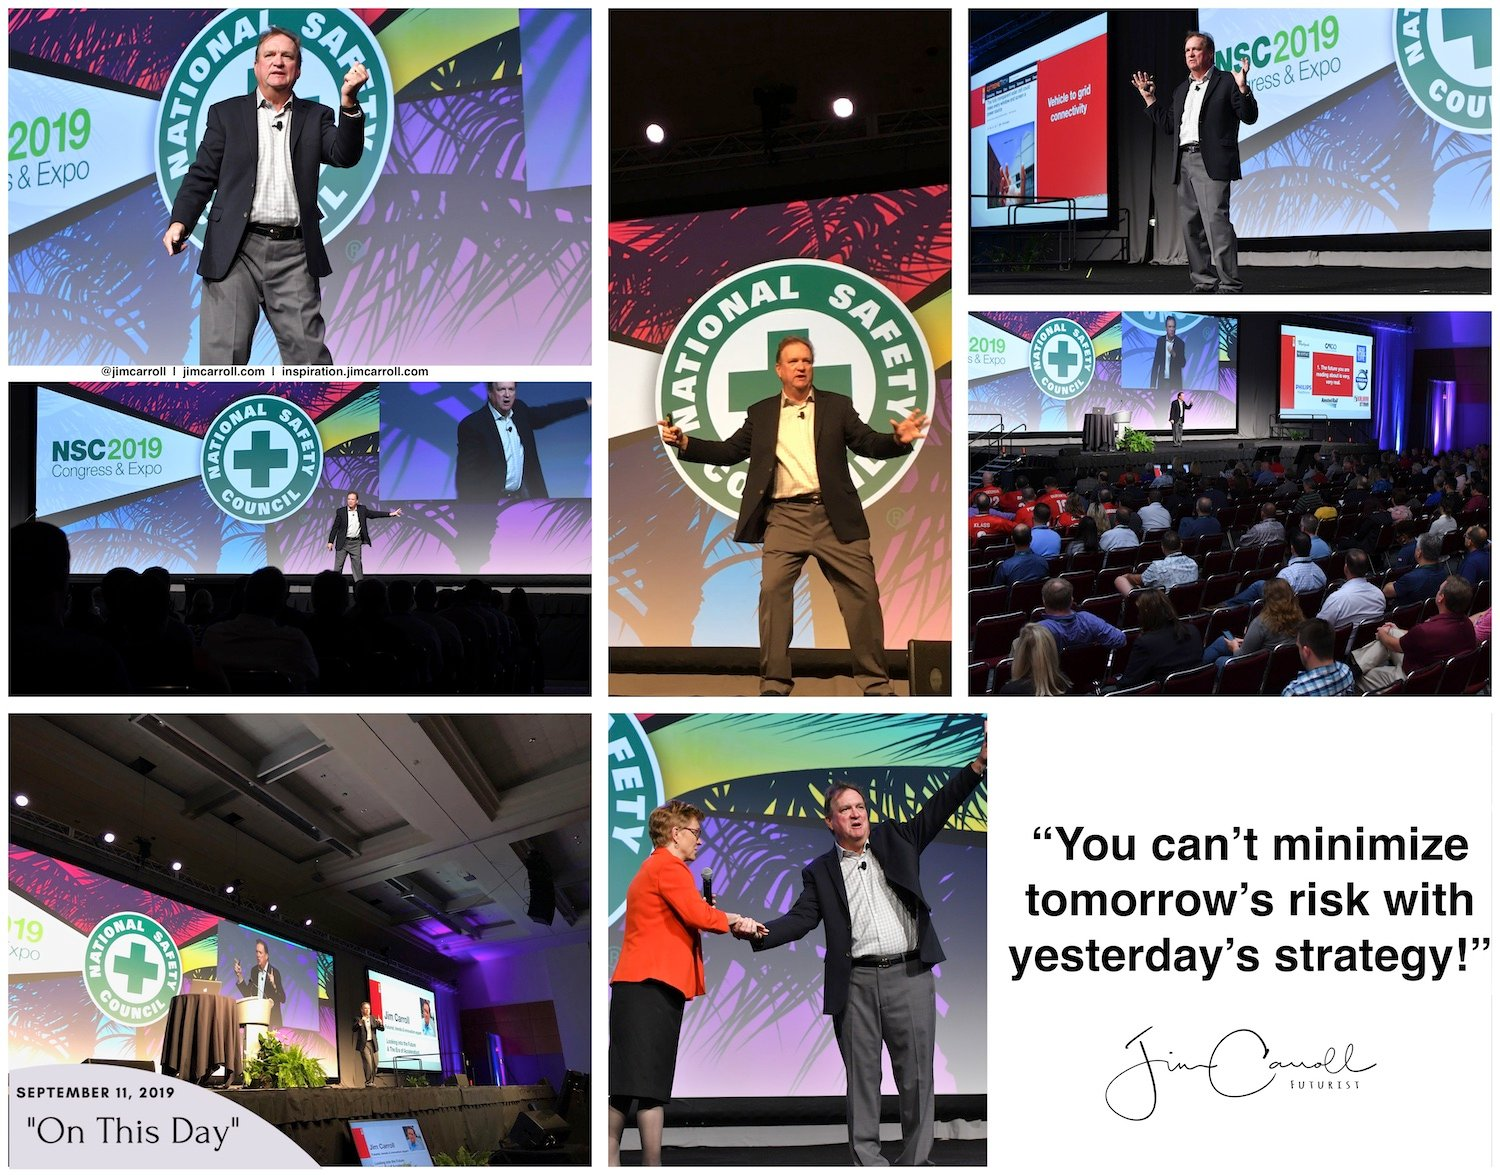 """Daily Inspiration - """"You can't minimize tomorrow's risk with yesterday's strategy!"""""""